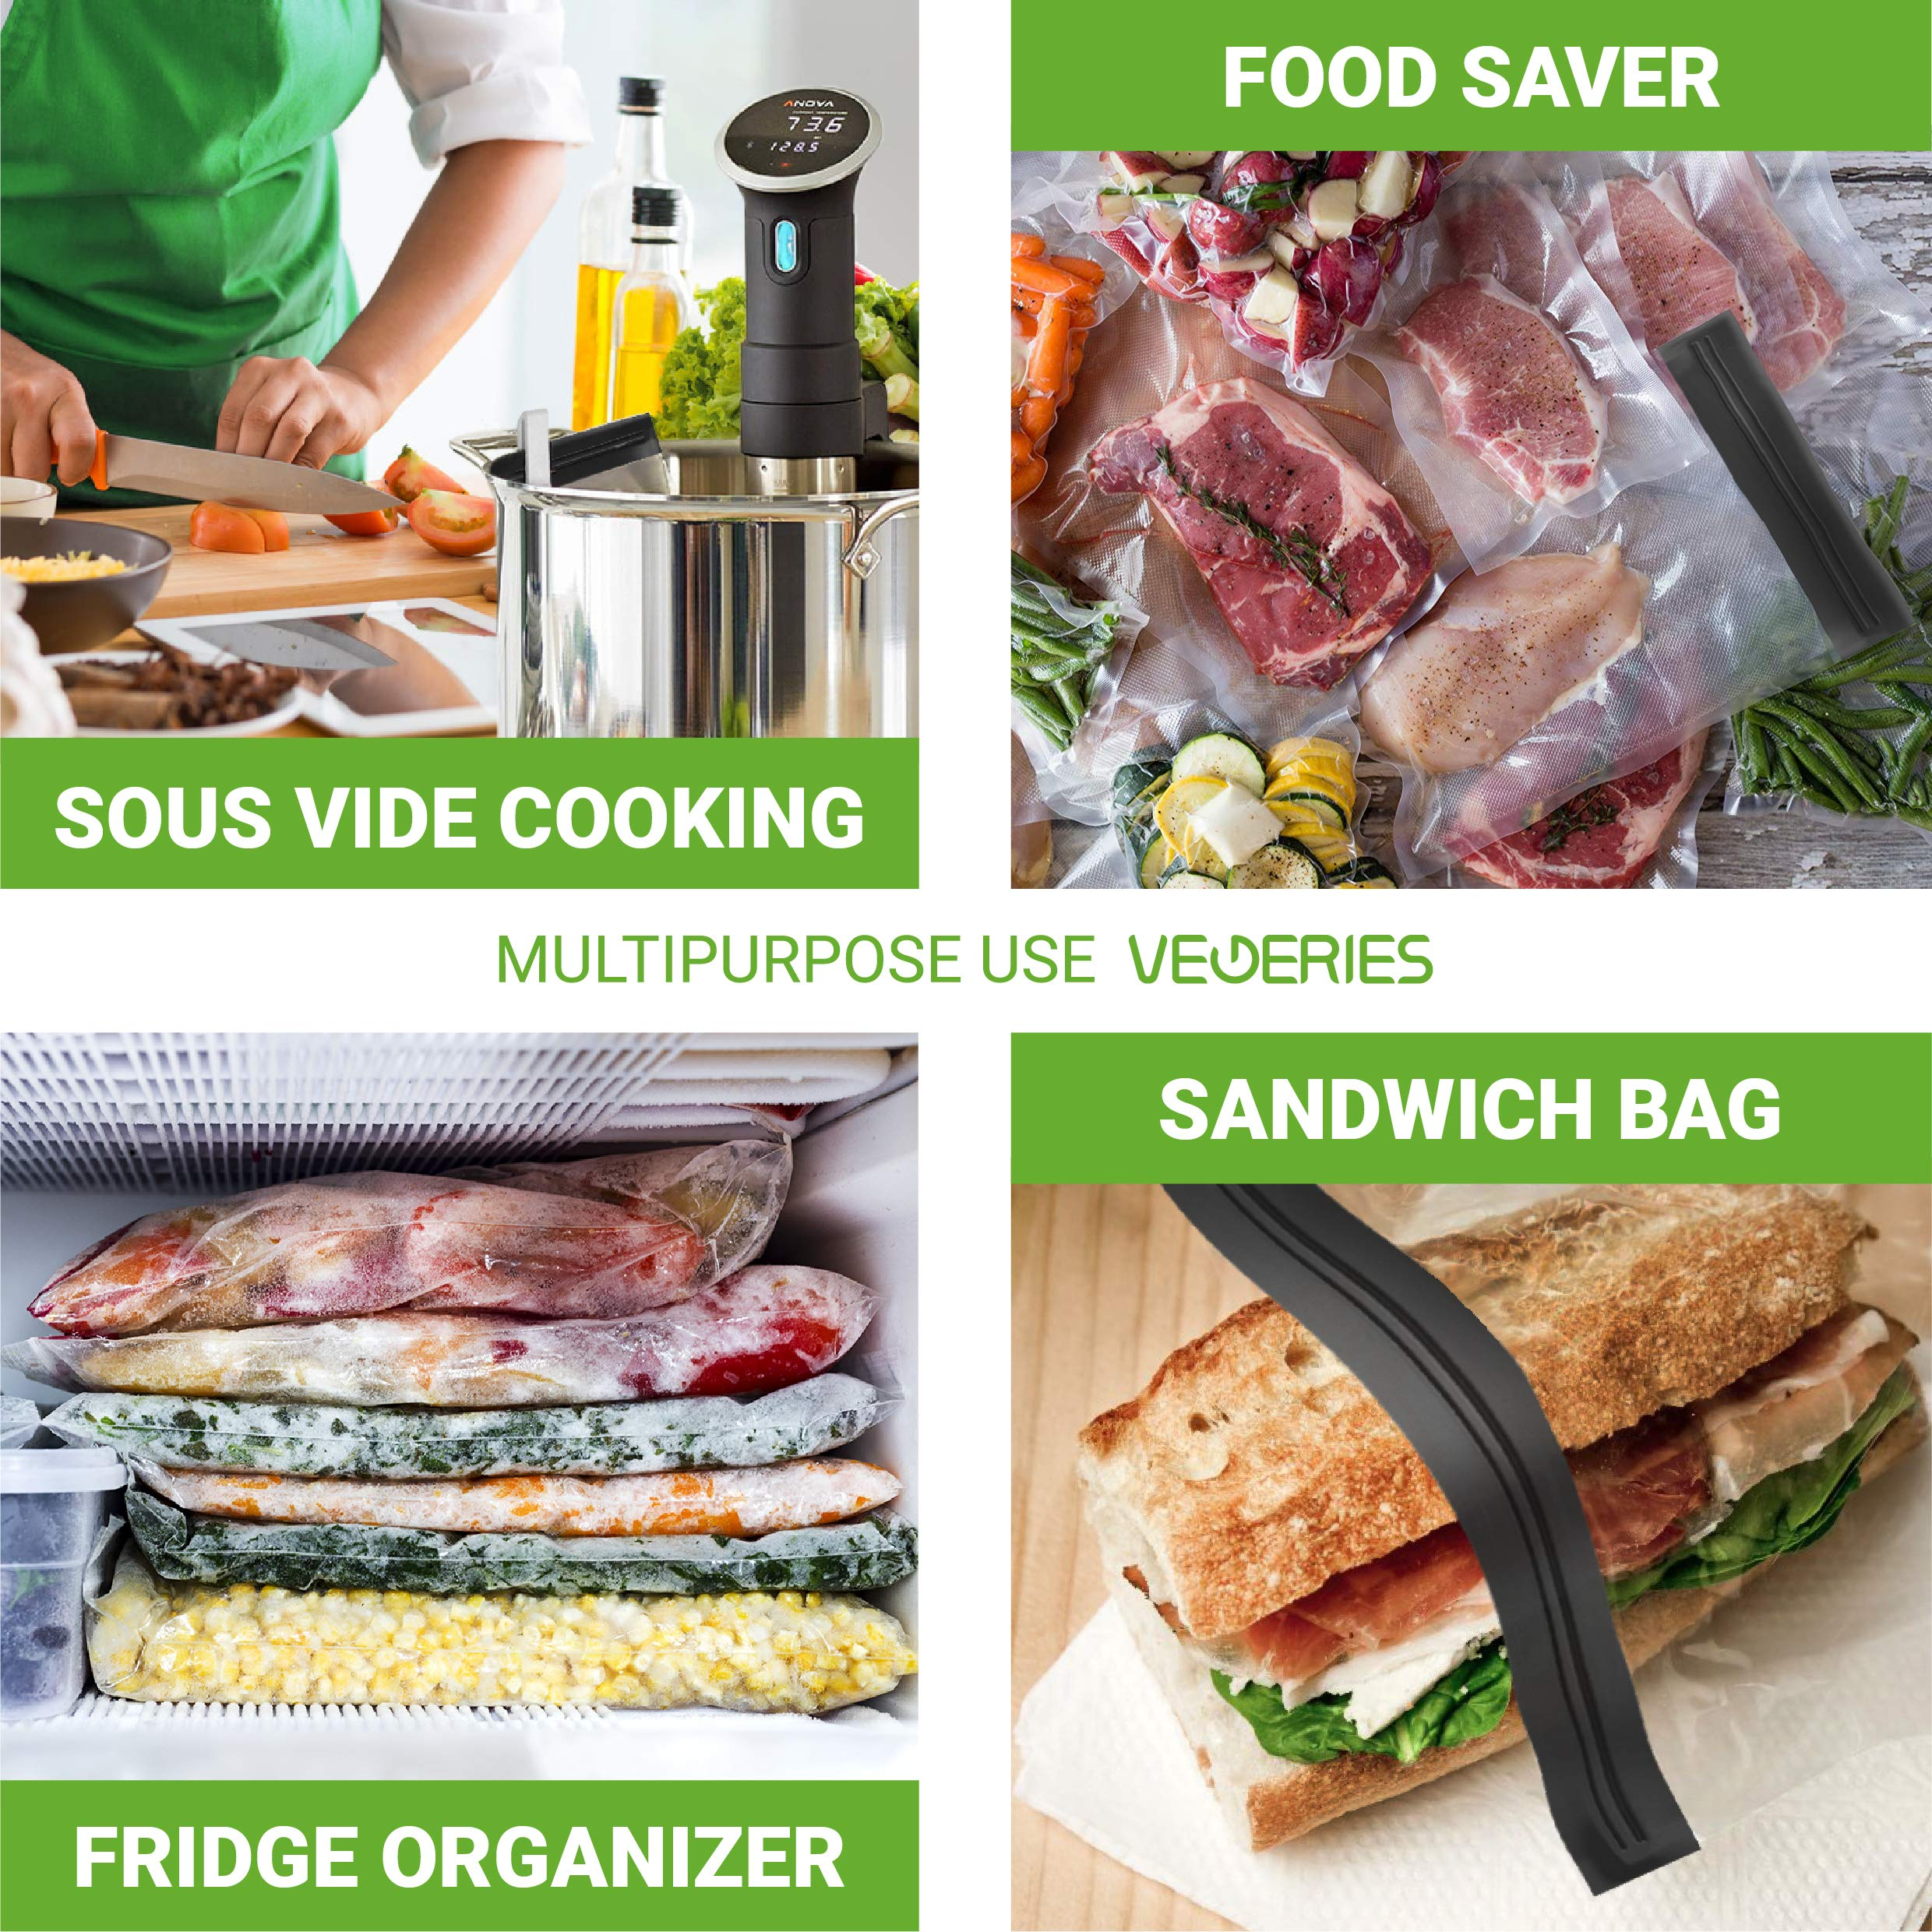 Sous Vide Bags 30 Reusable Vacuum Food Storage Bags for Anova and Joule Cookers - 3 sizes Sous Vide Bag Kit with Pump - 4 Sealing Clips - 4 Sous Vide Bag Clips for Food Storage and Sous Vide Cooking by VEGERIES (Image #2)